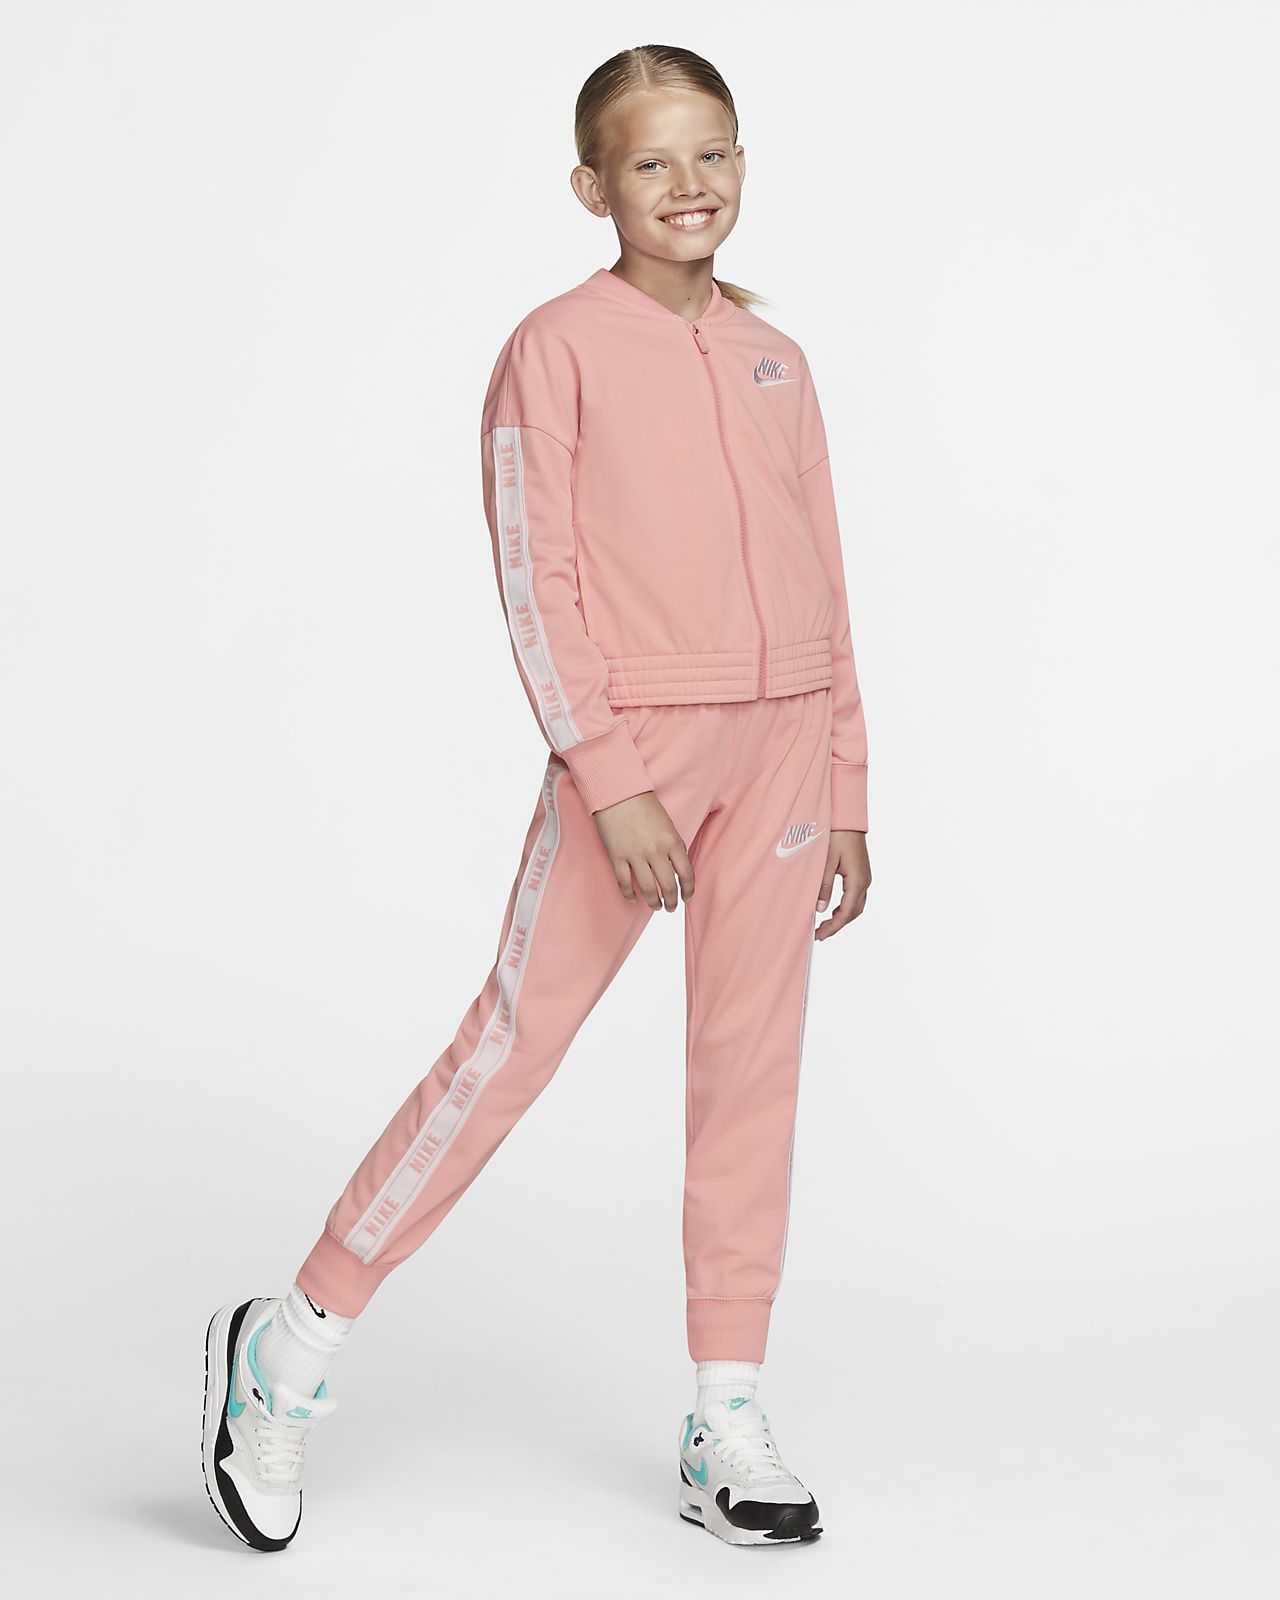 catch performance sportswear pick up Nike Sportswear Girls' Tracksuit